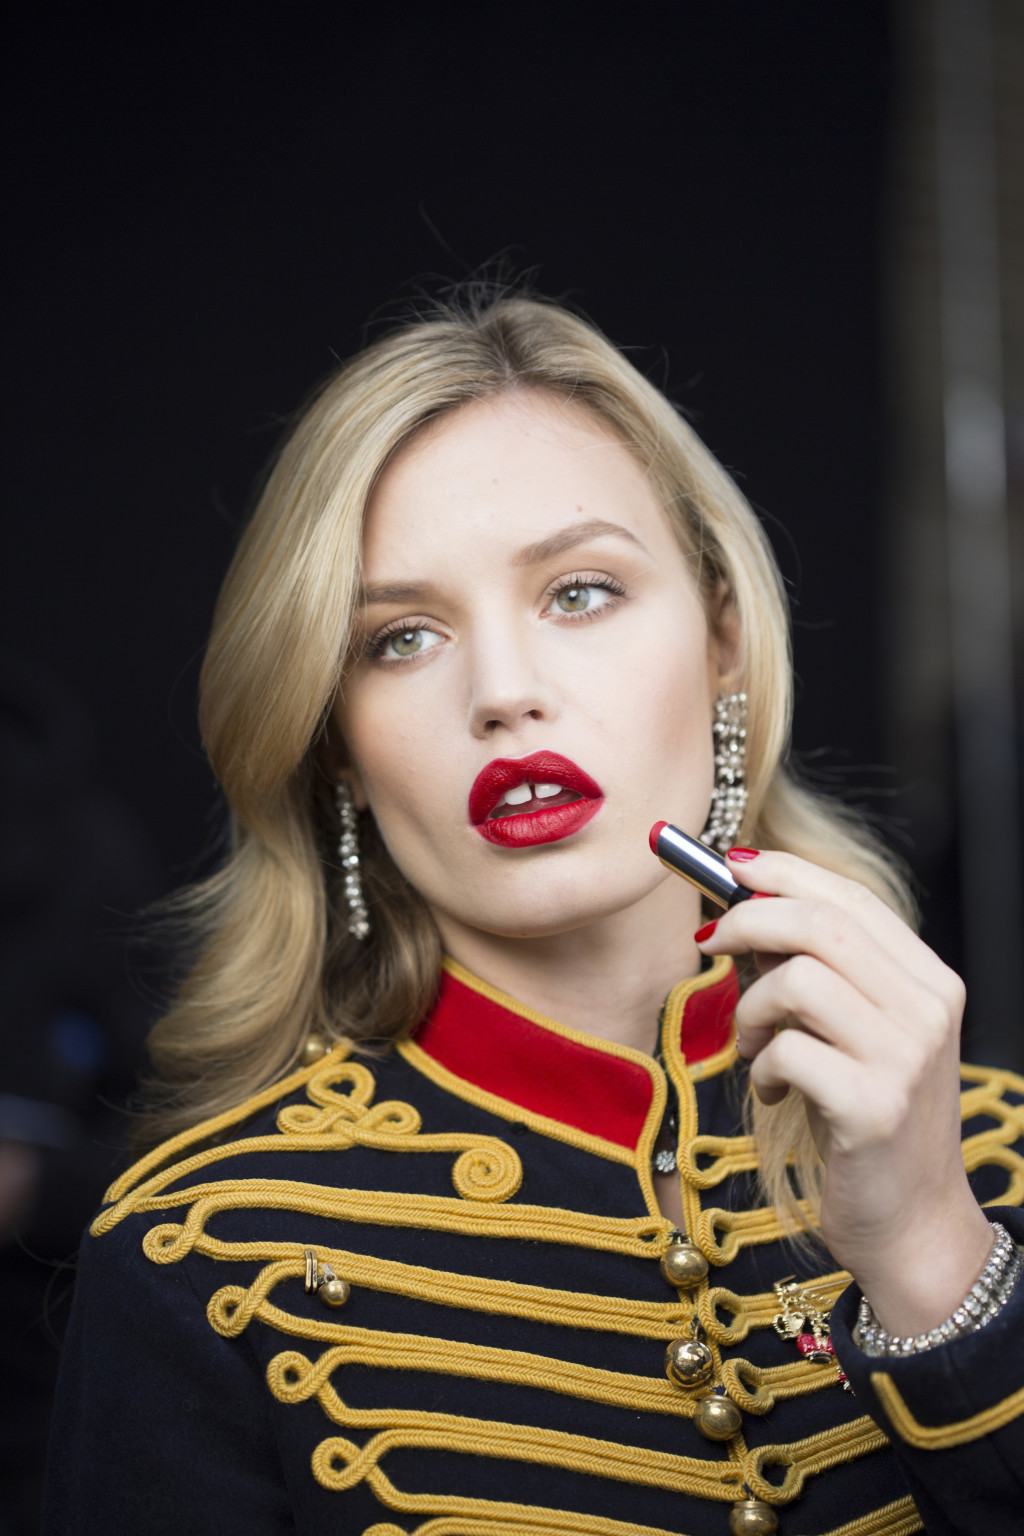 Rimmel's Top Tips for Choosing and Wearing the Perfect Lipstick